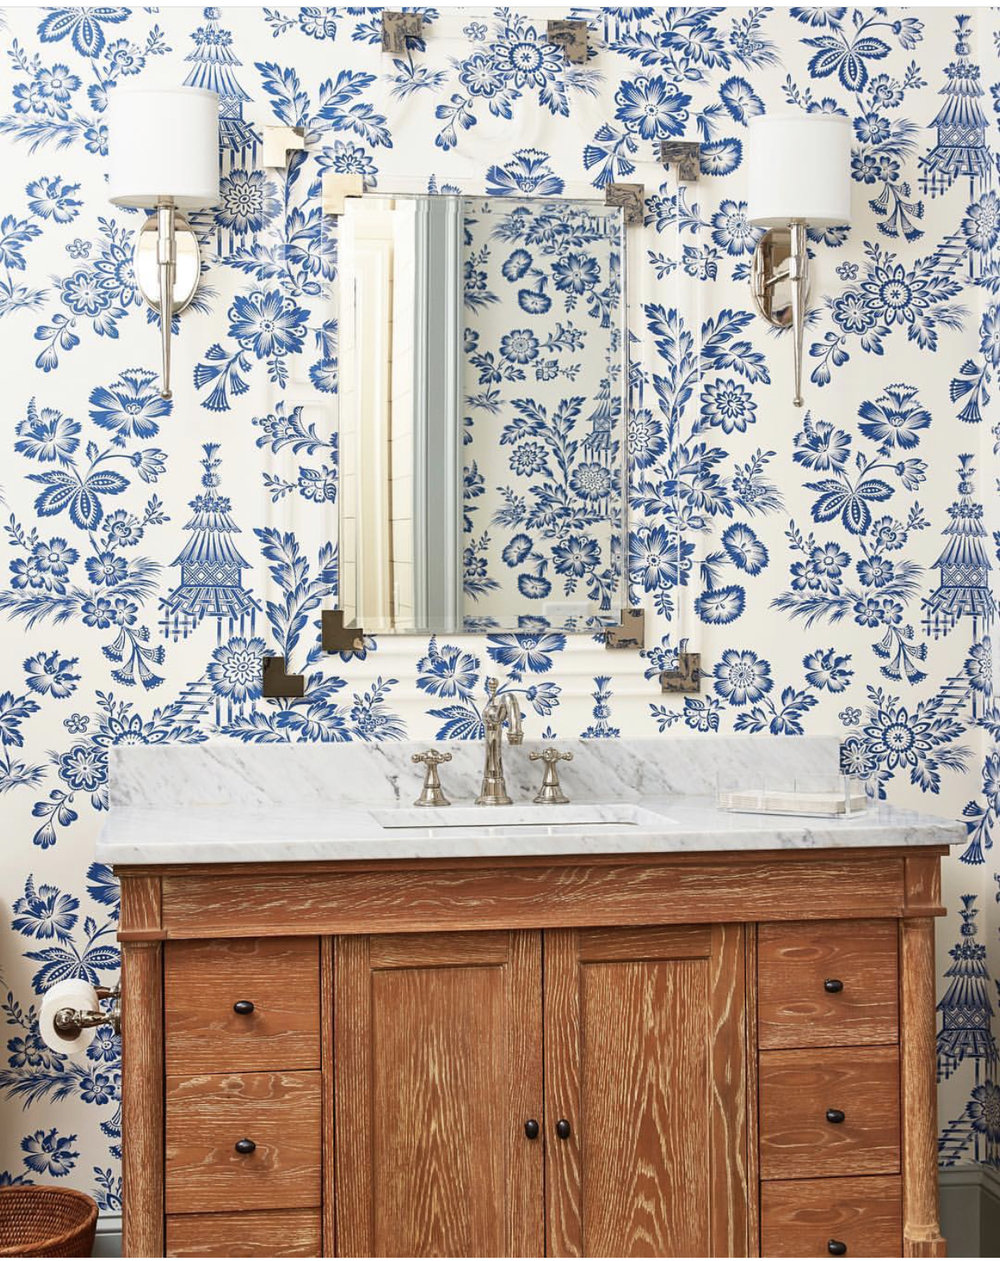 *half bath inspiration. That blue and white wall paper, lucite mirror, wood vanity and marble countertops SPEAKS to me.